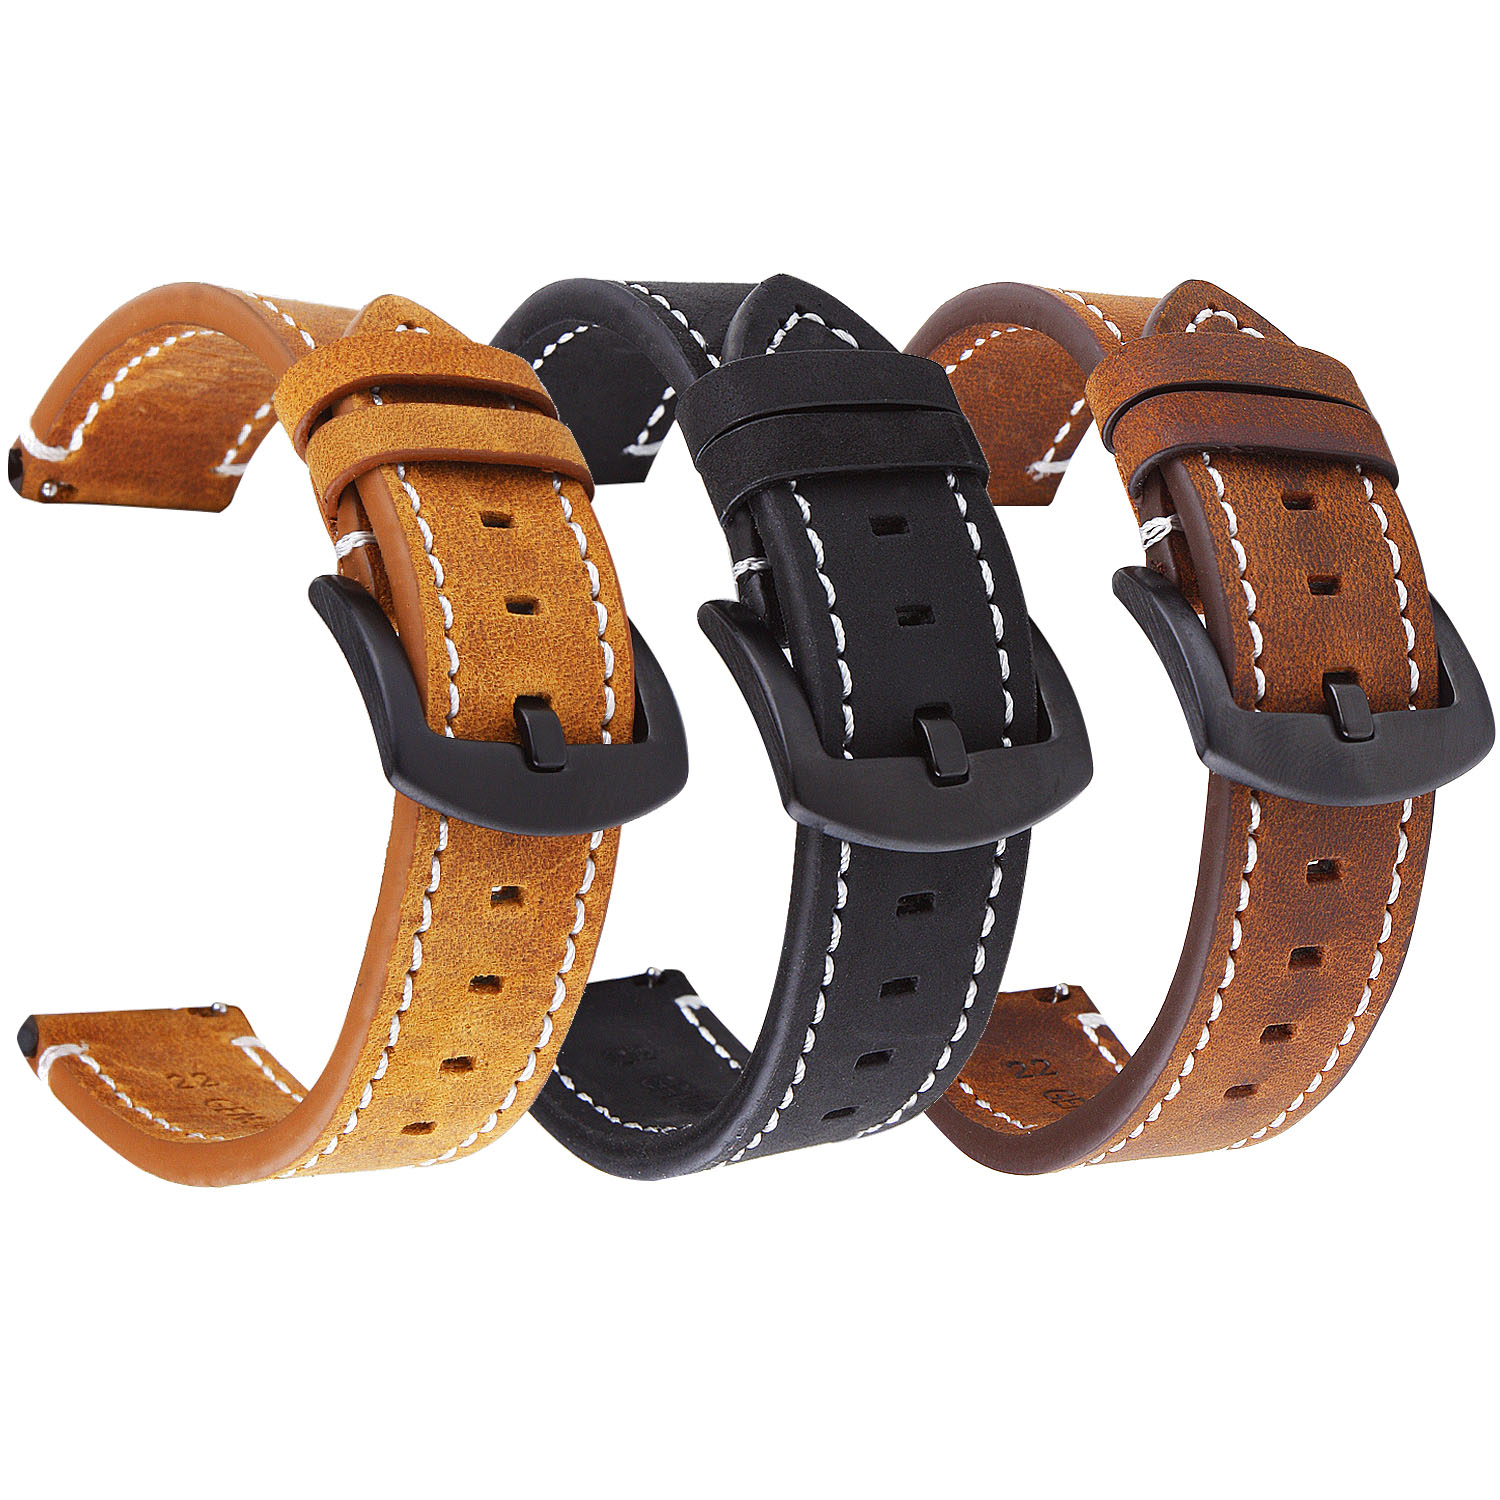 Watchband 18mm 20mm 22mm High End Retro Calf Leather Watch Strap Black Metal Buckle Genuine Leather Watch Band For Men Women